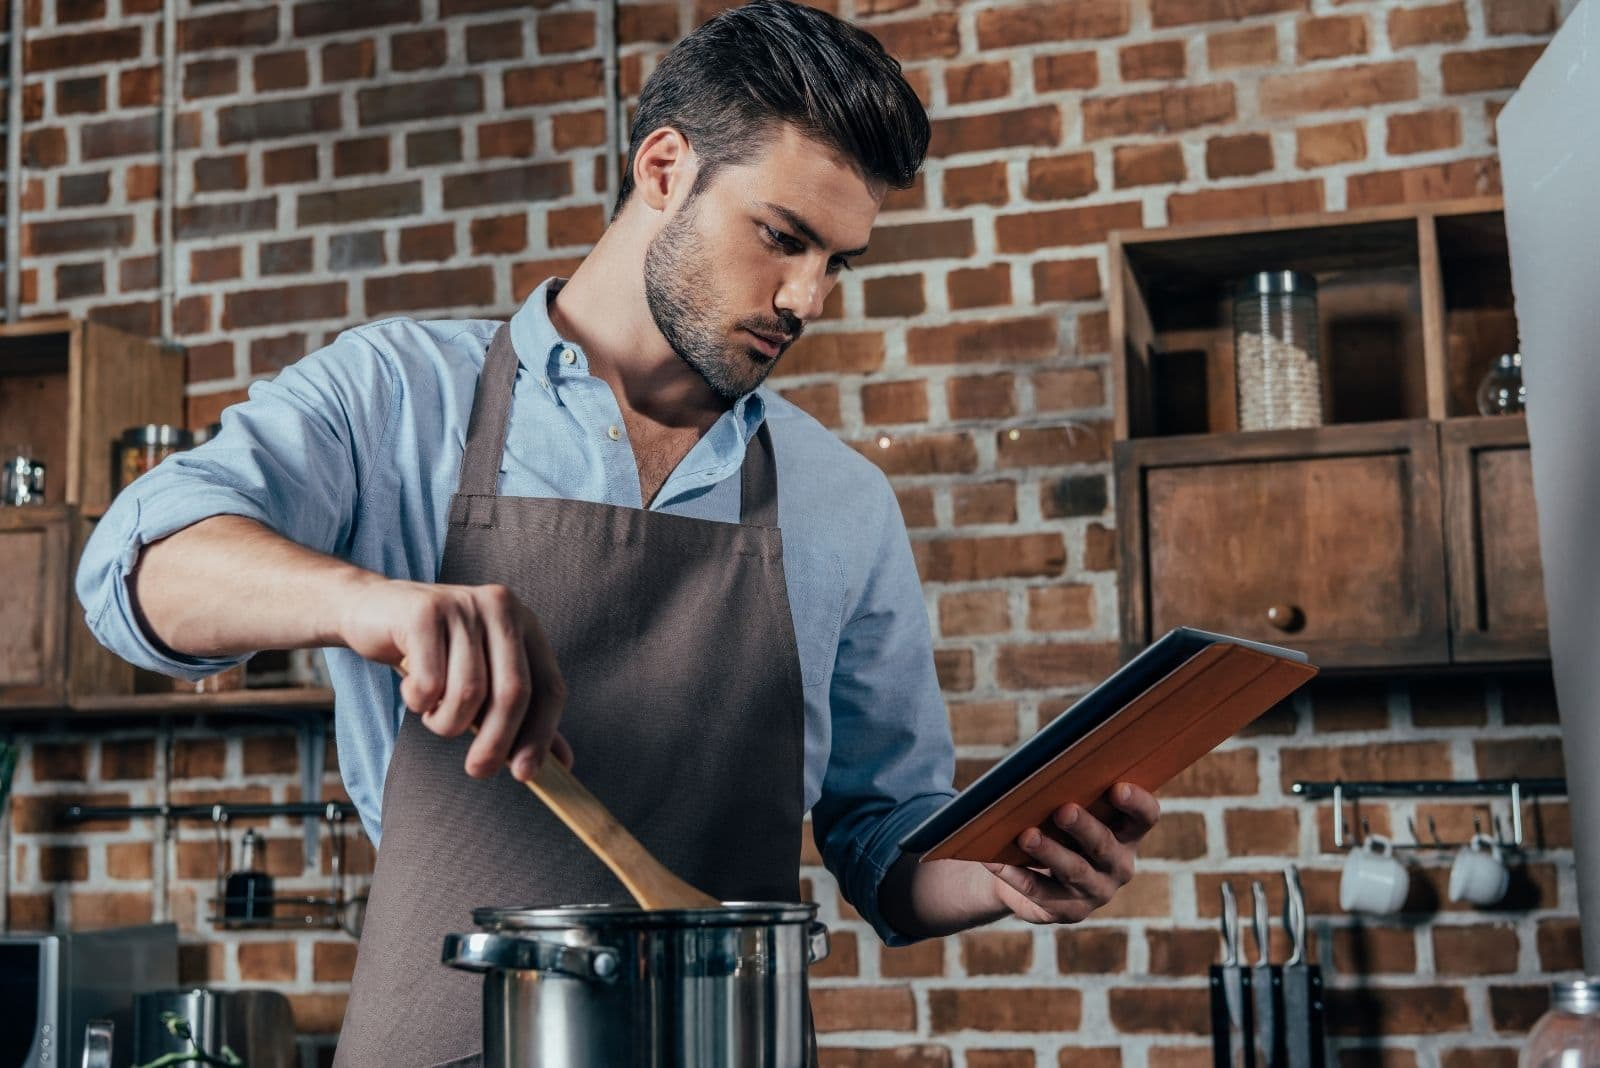 young man cooking in the kitchen looking at the cookbook while stirring